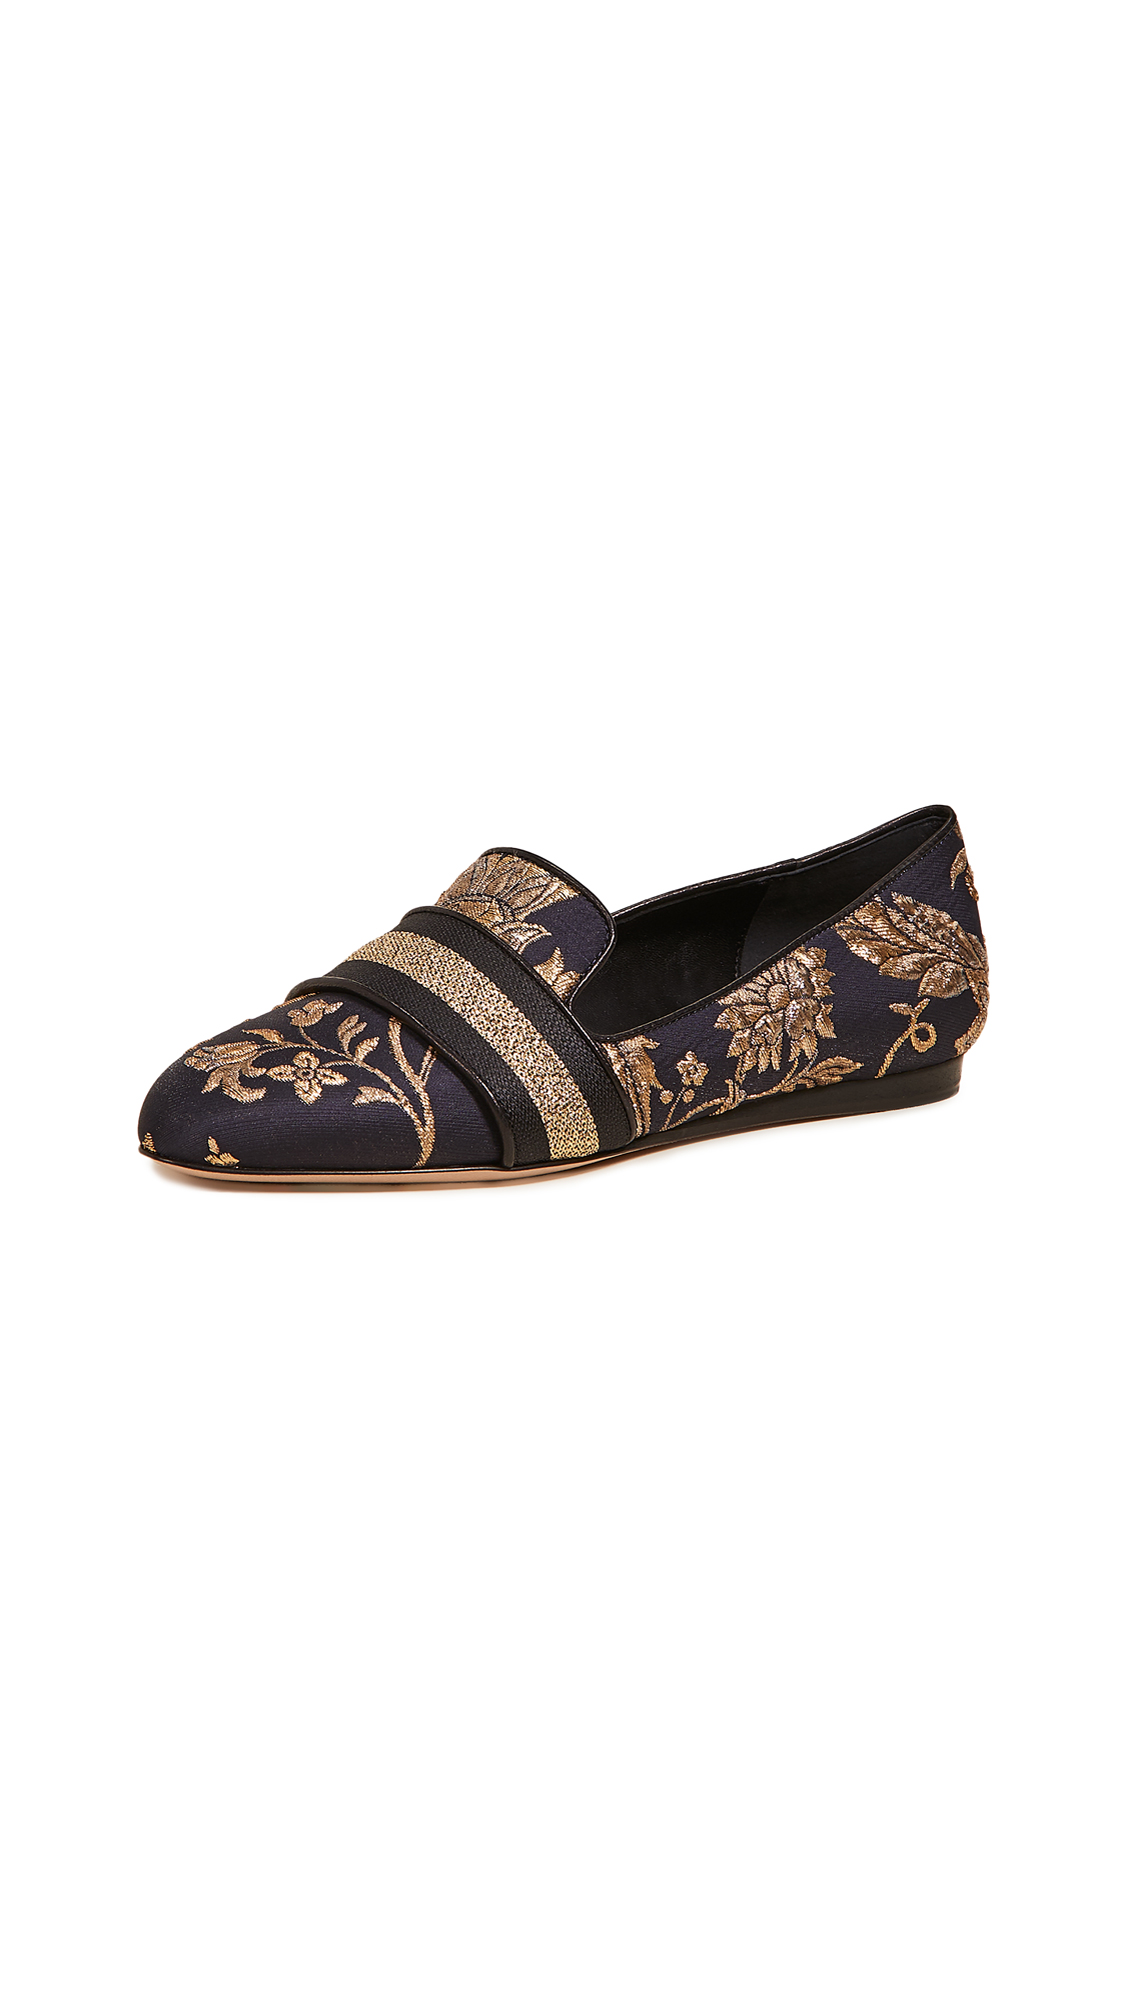 Veronica Beard Griffin Loafers - Graphite/Gold